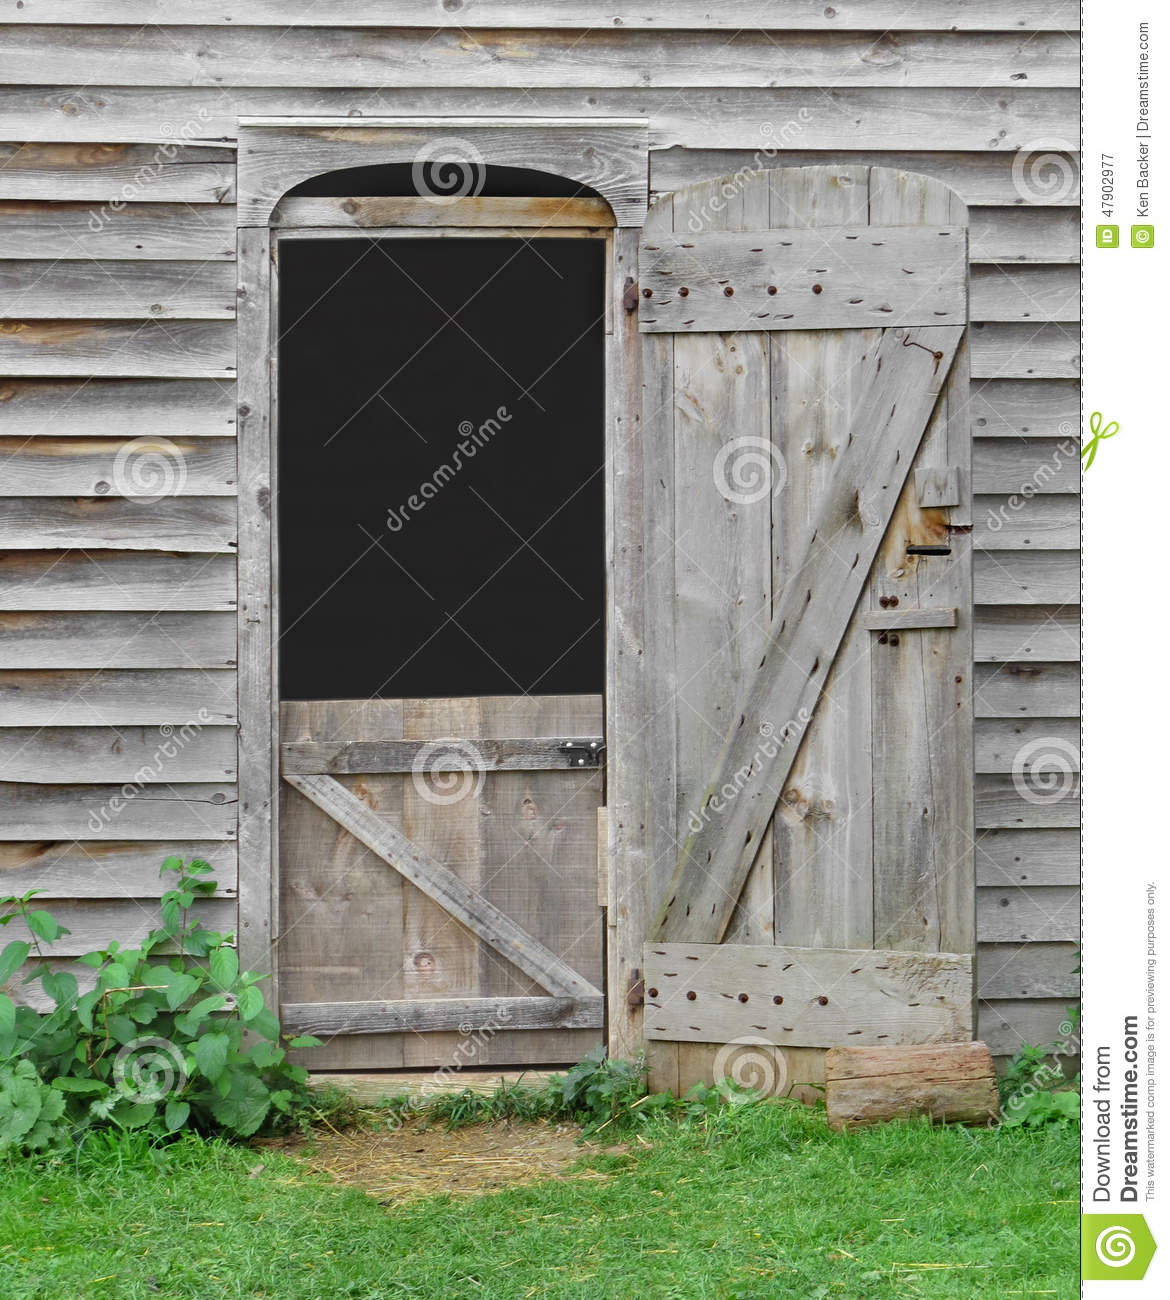 Le Meilleur Small Doorway In An Old Wooden Barn Stock Image Image Ce Mois Ci